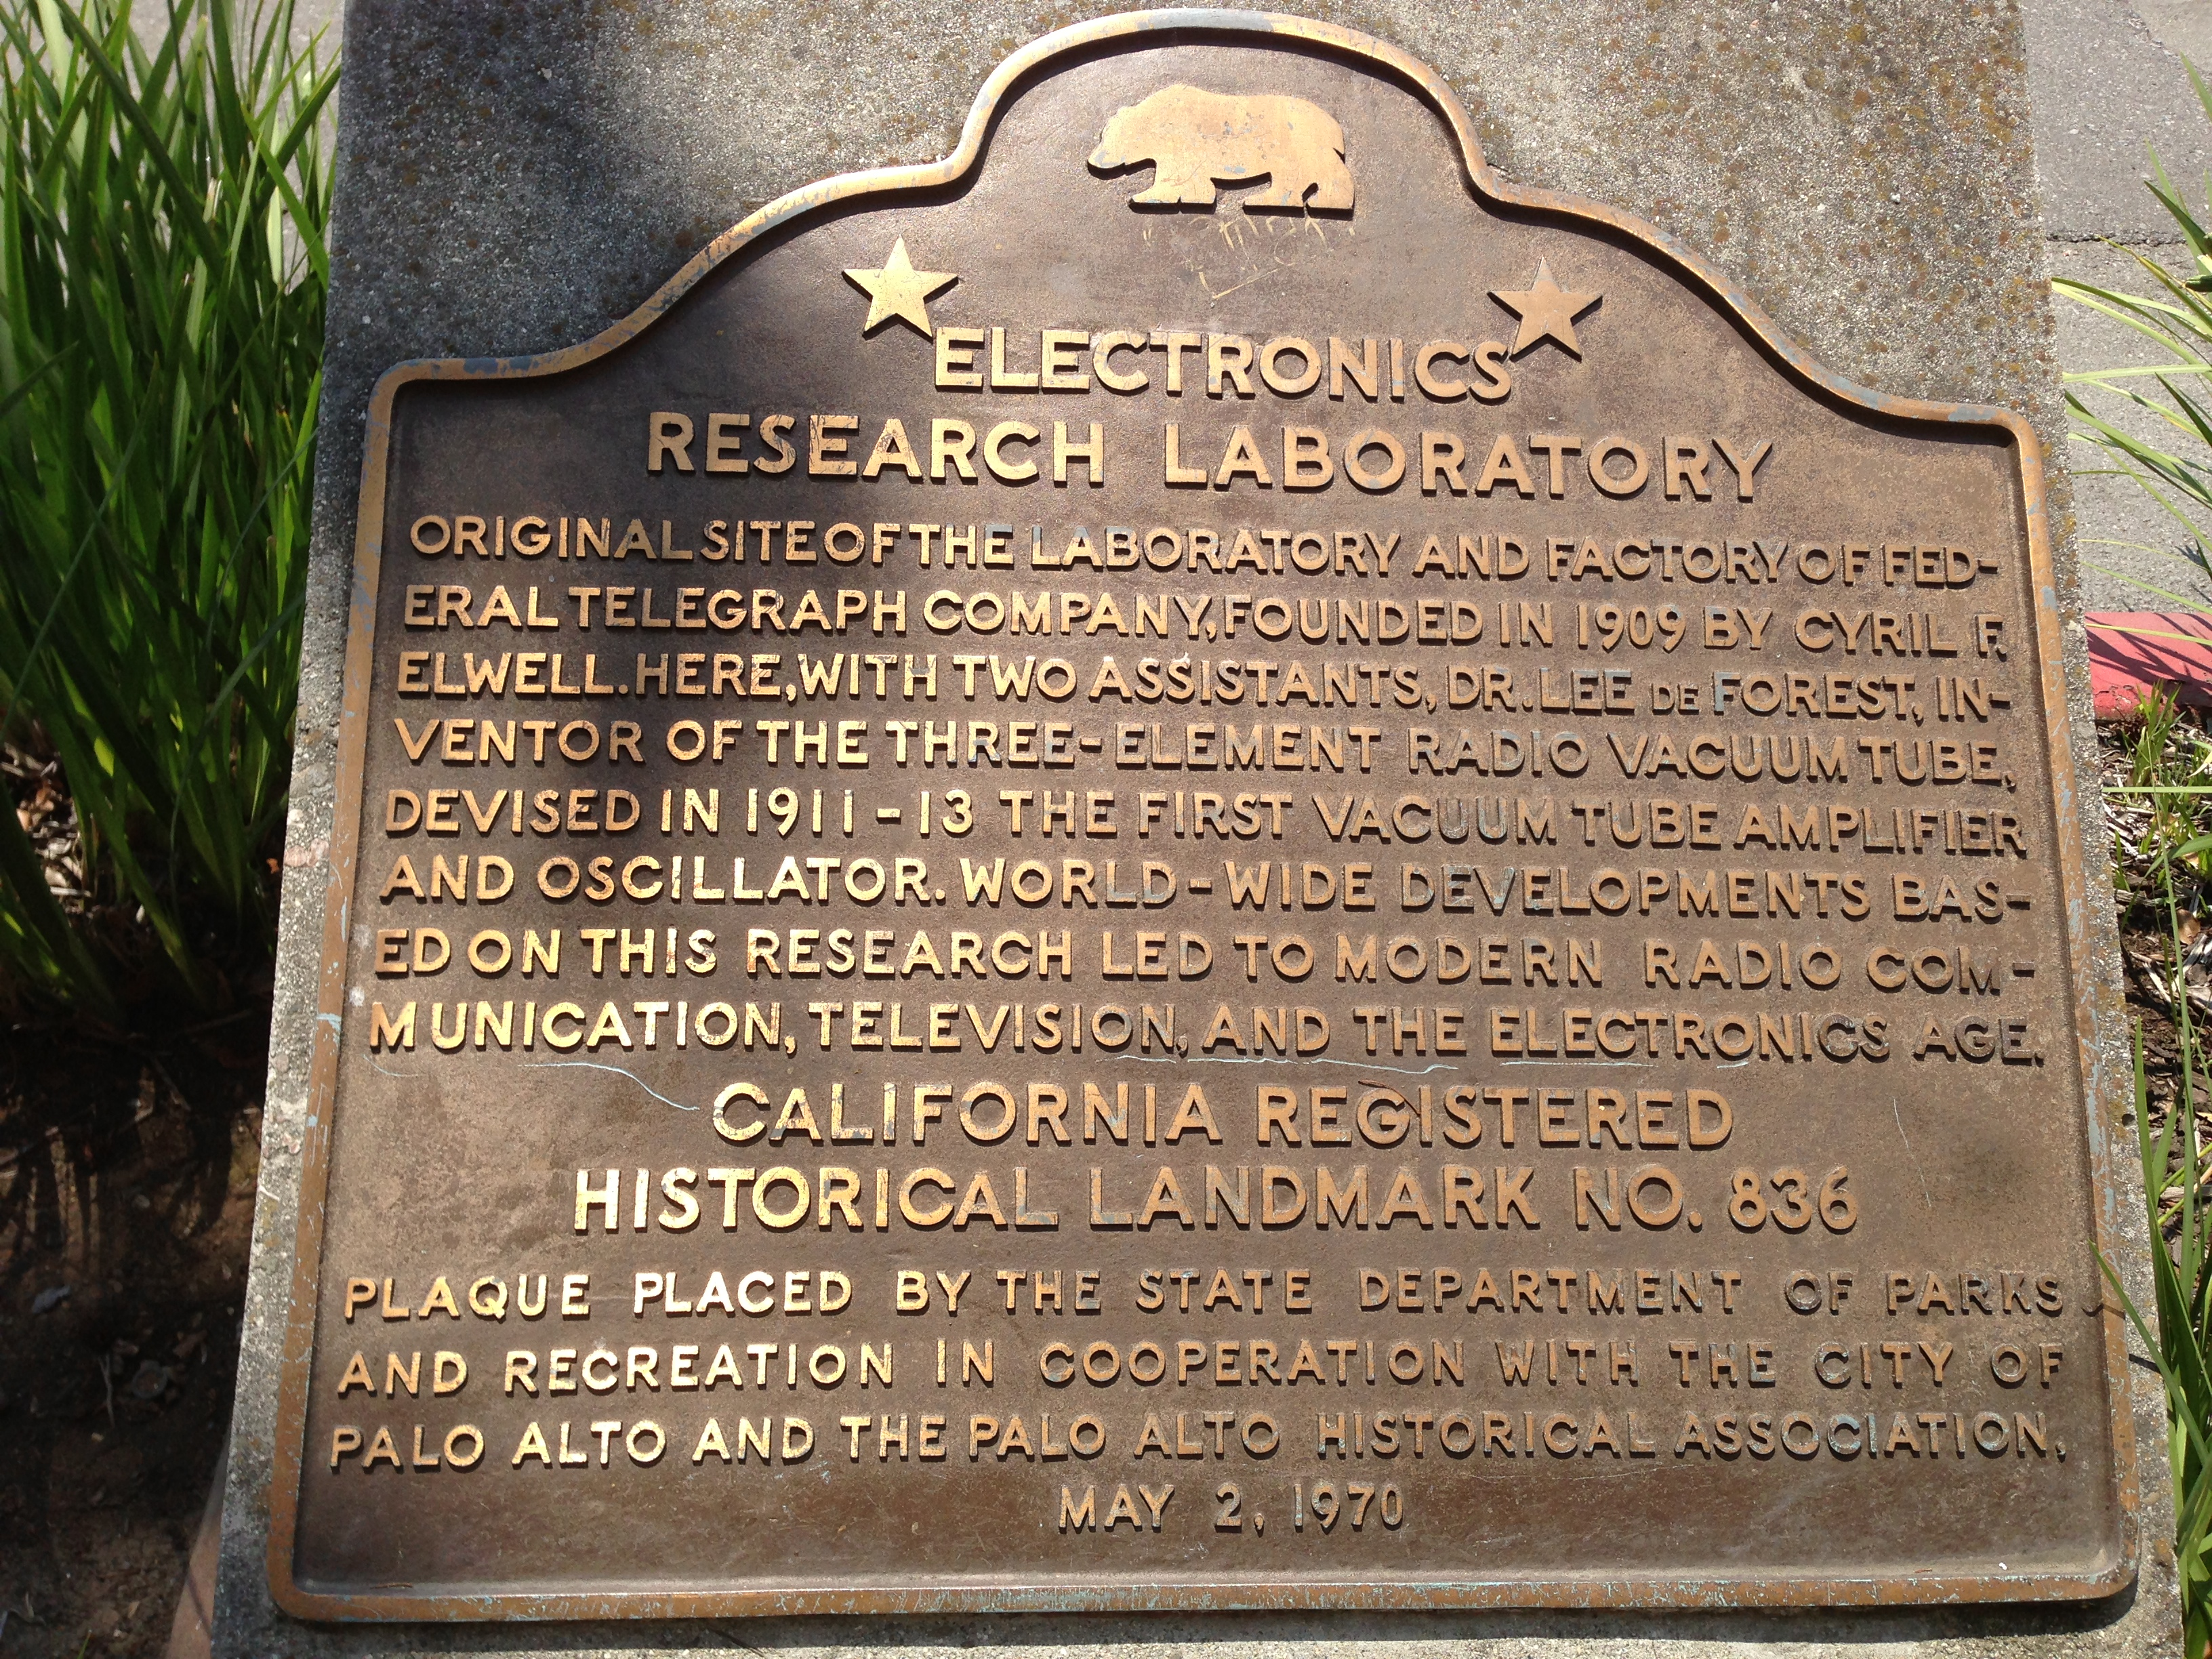 PIONEER ELECTRONICS RESEARCH LABORATORY